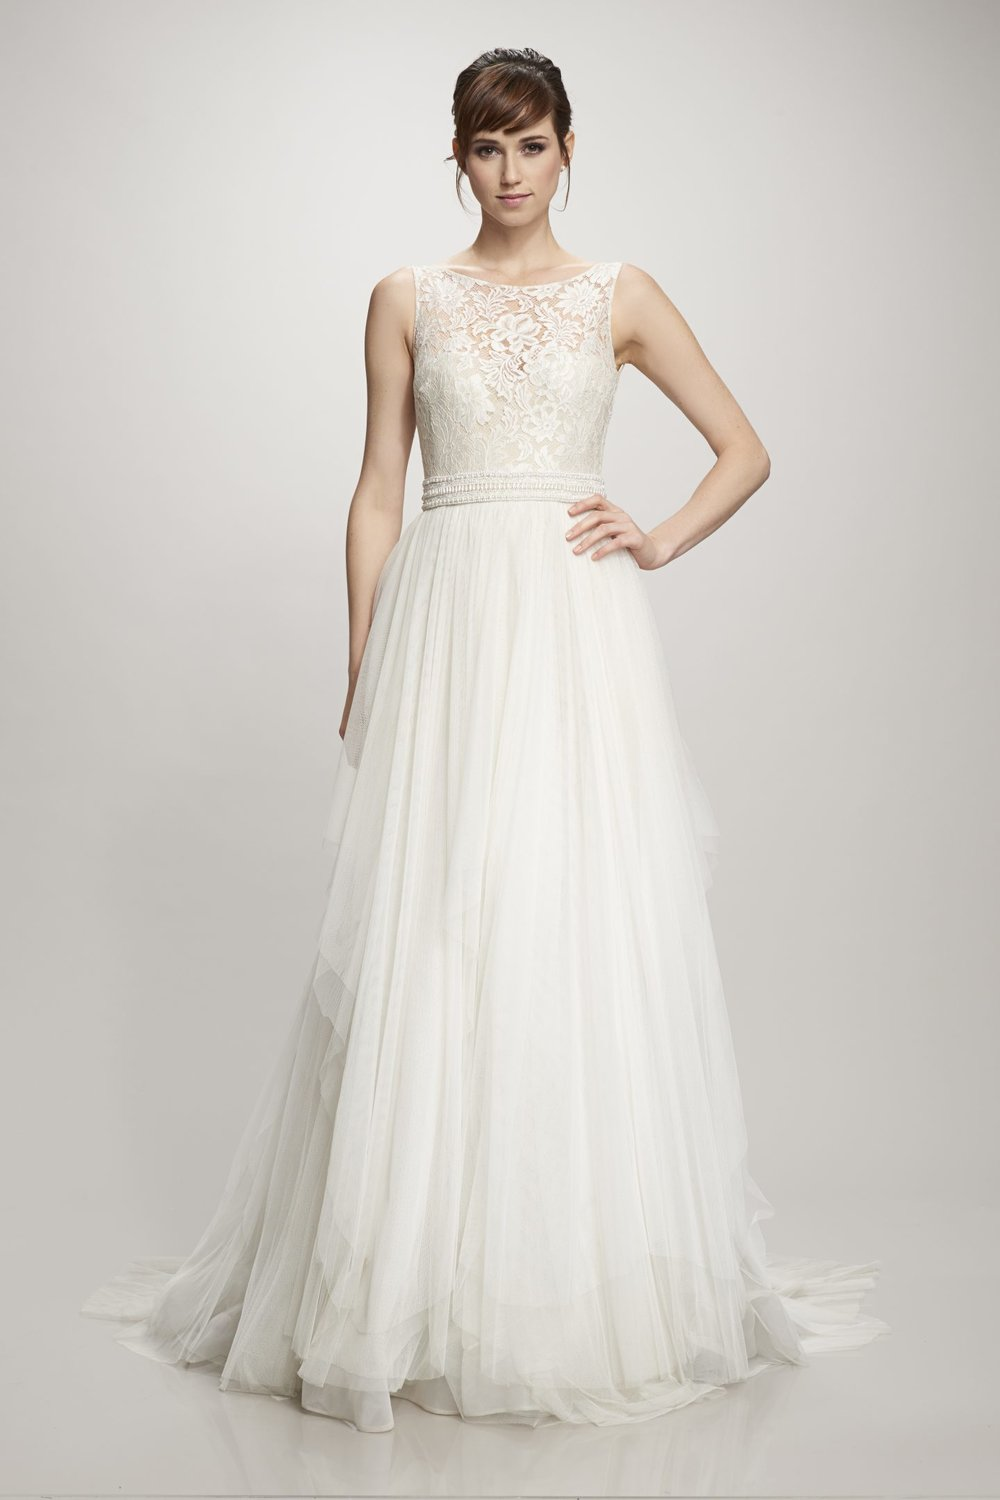 Theia 890200 Ivory  Retail Price $2000 | Our Price $1400